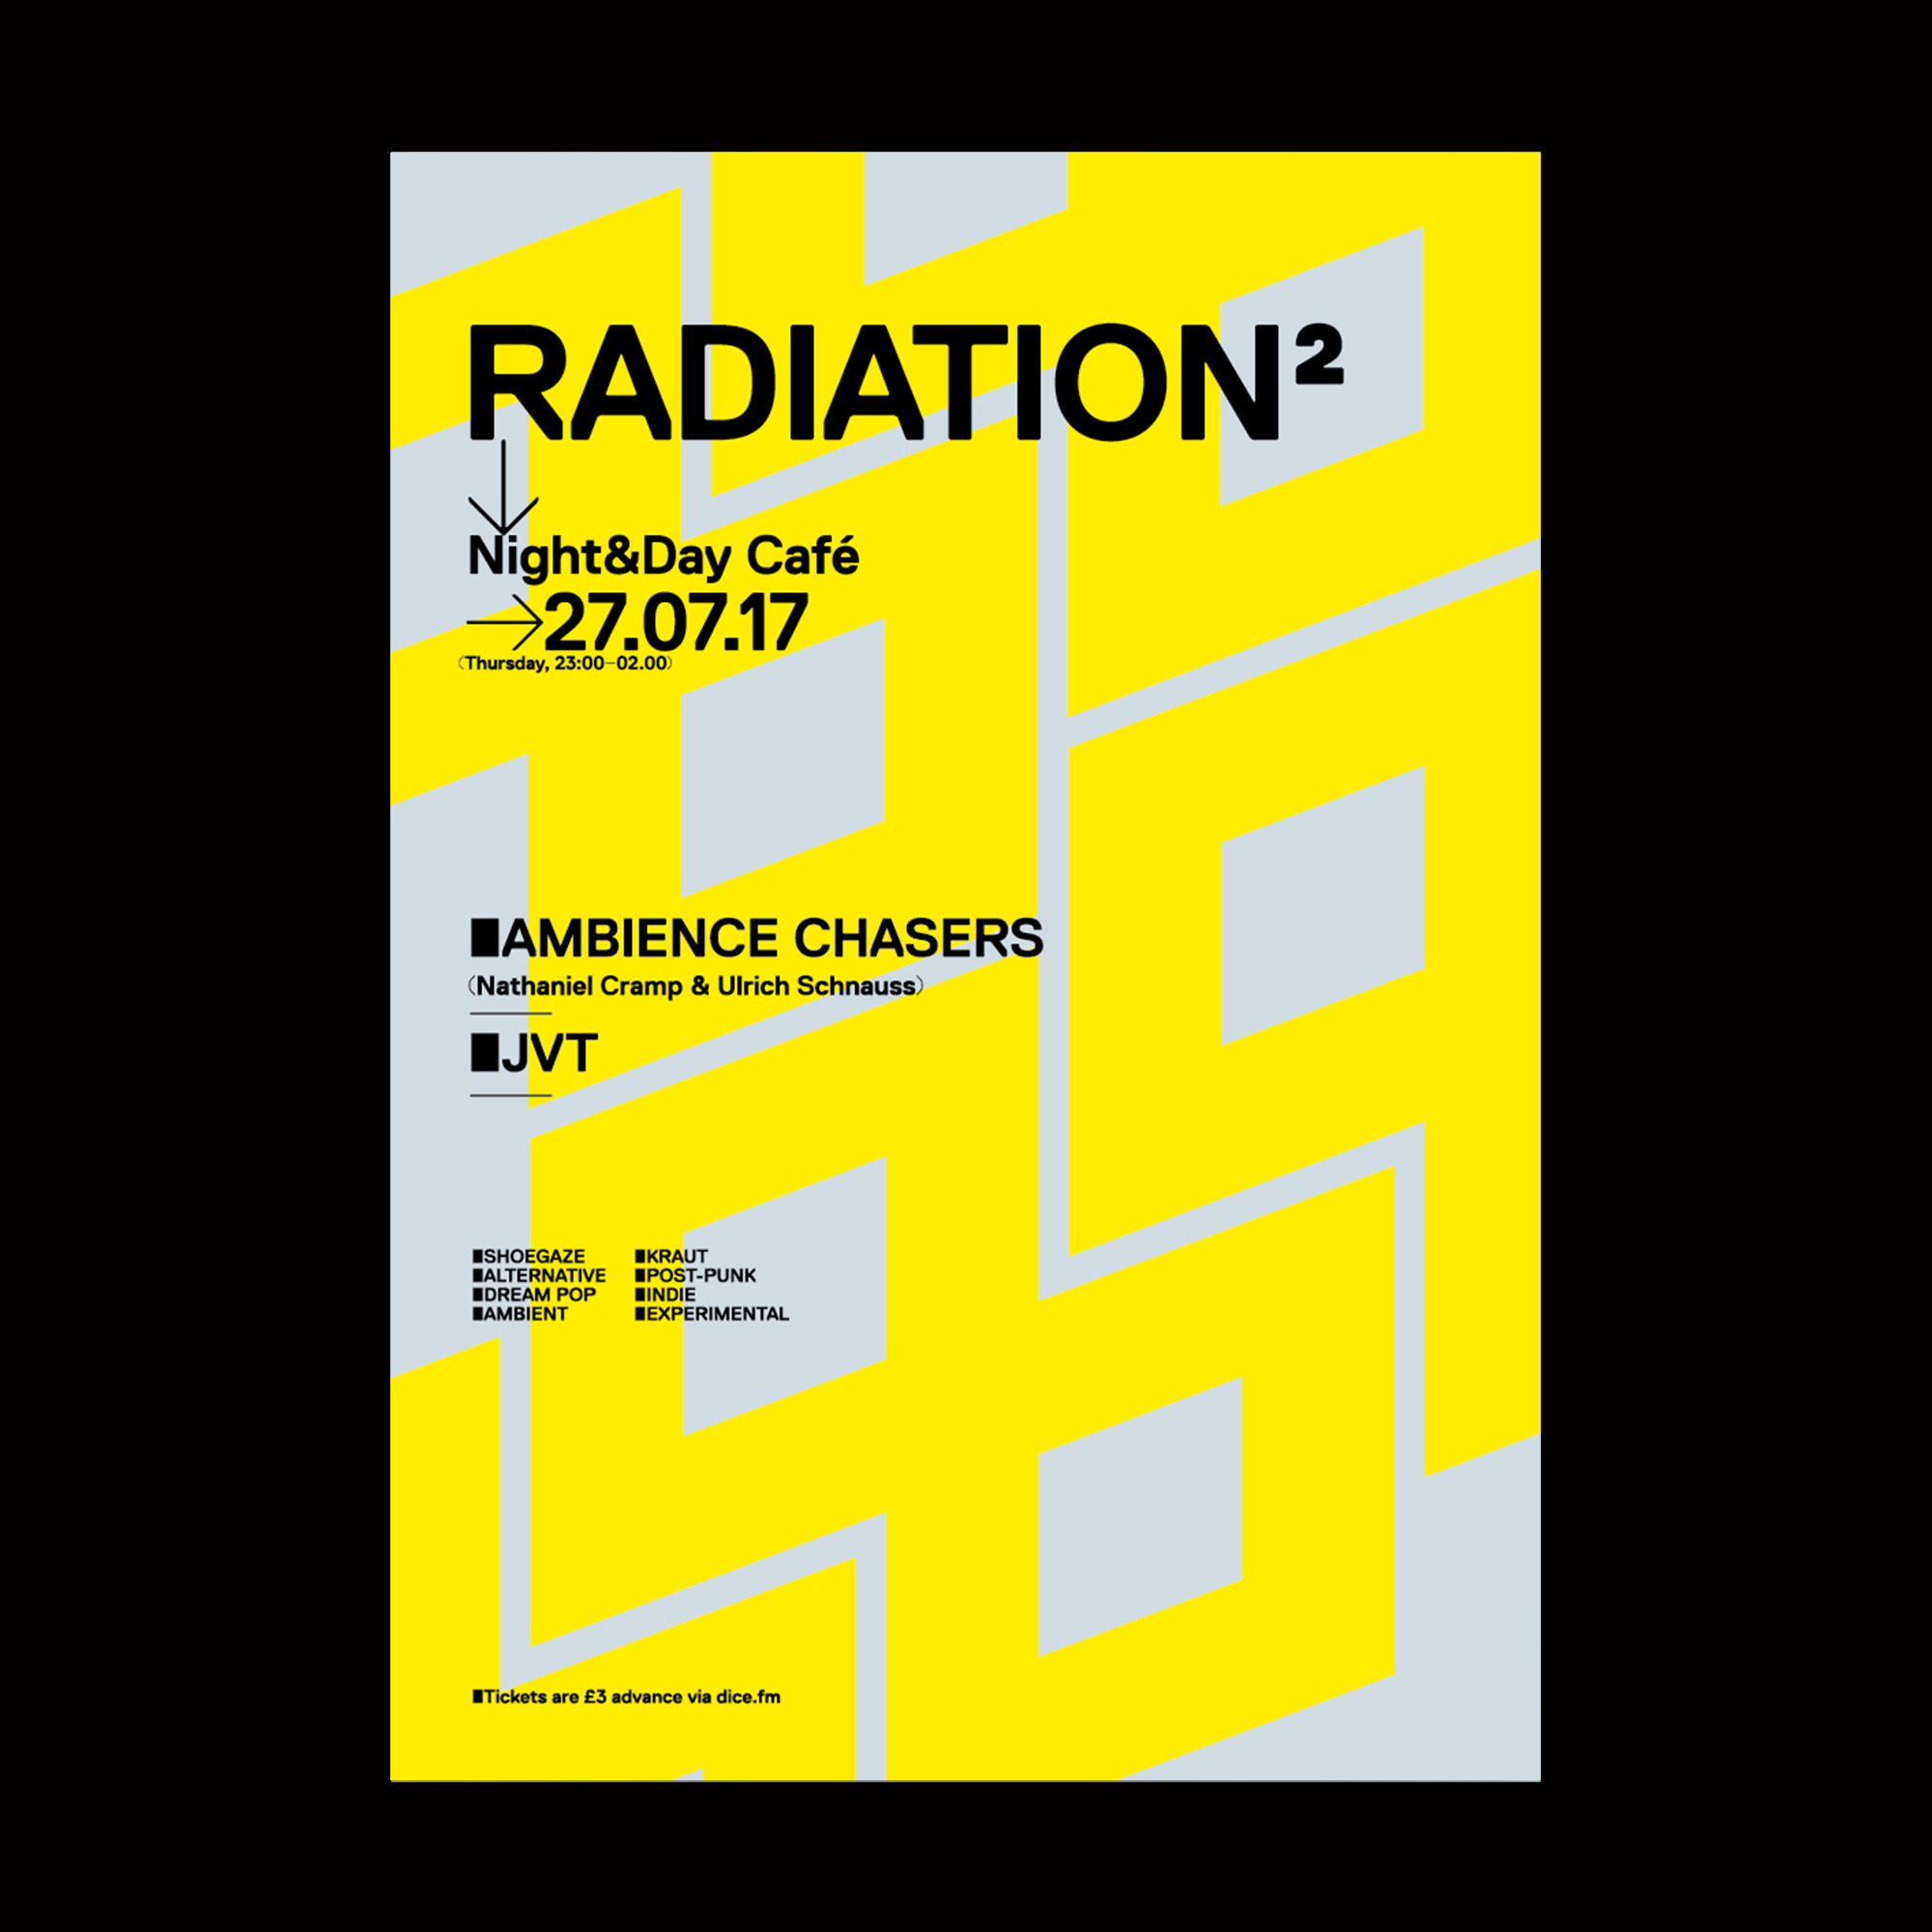 RADIATION evening music Manches - modularlab | ello